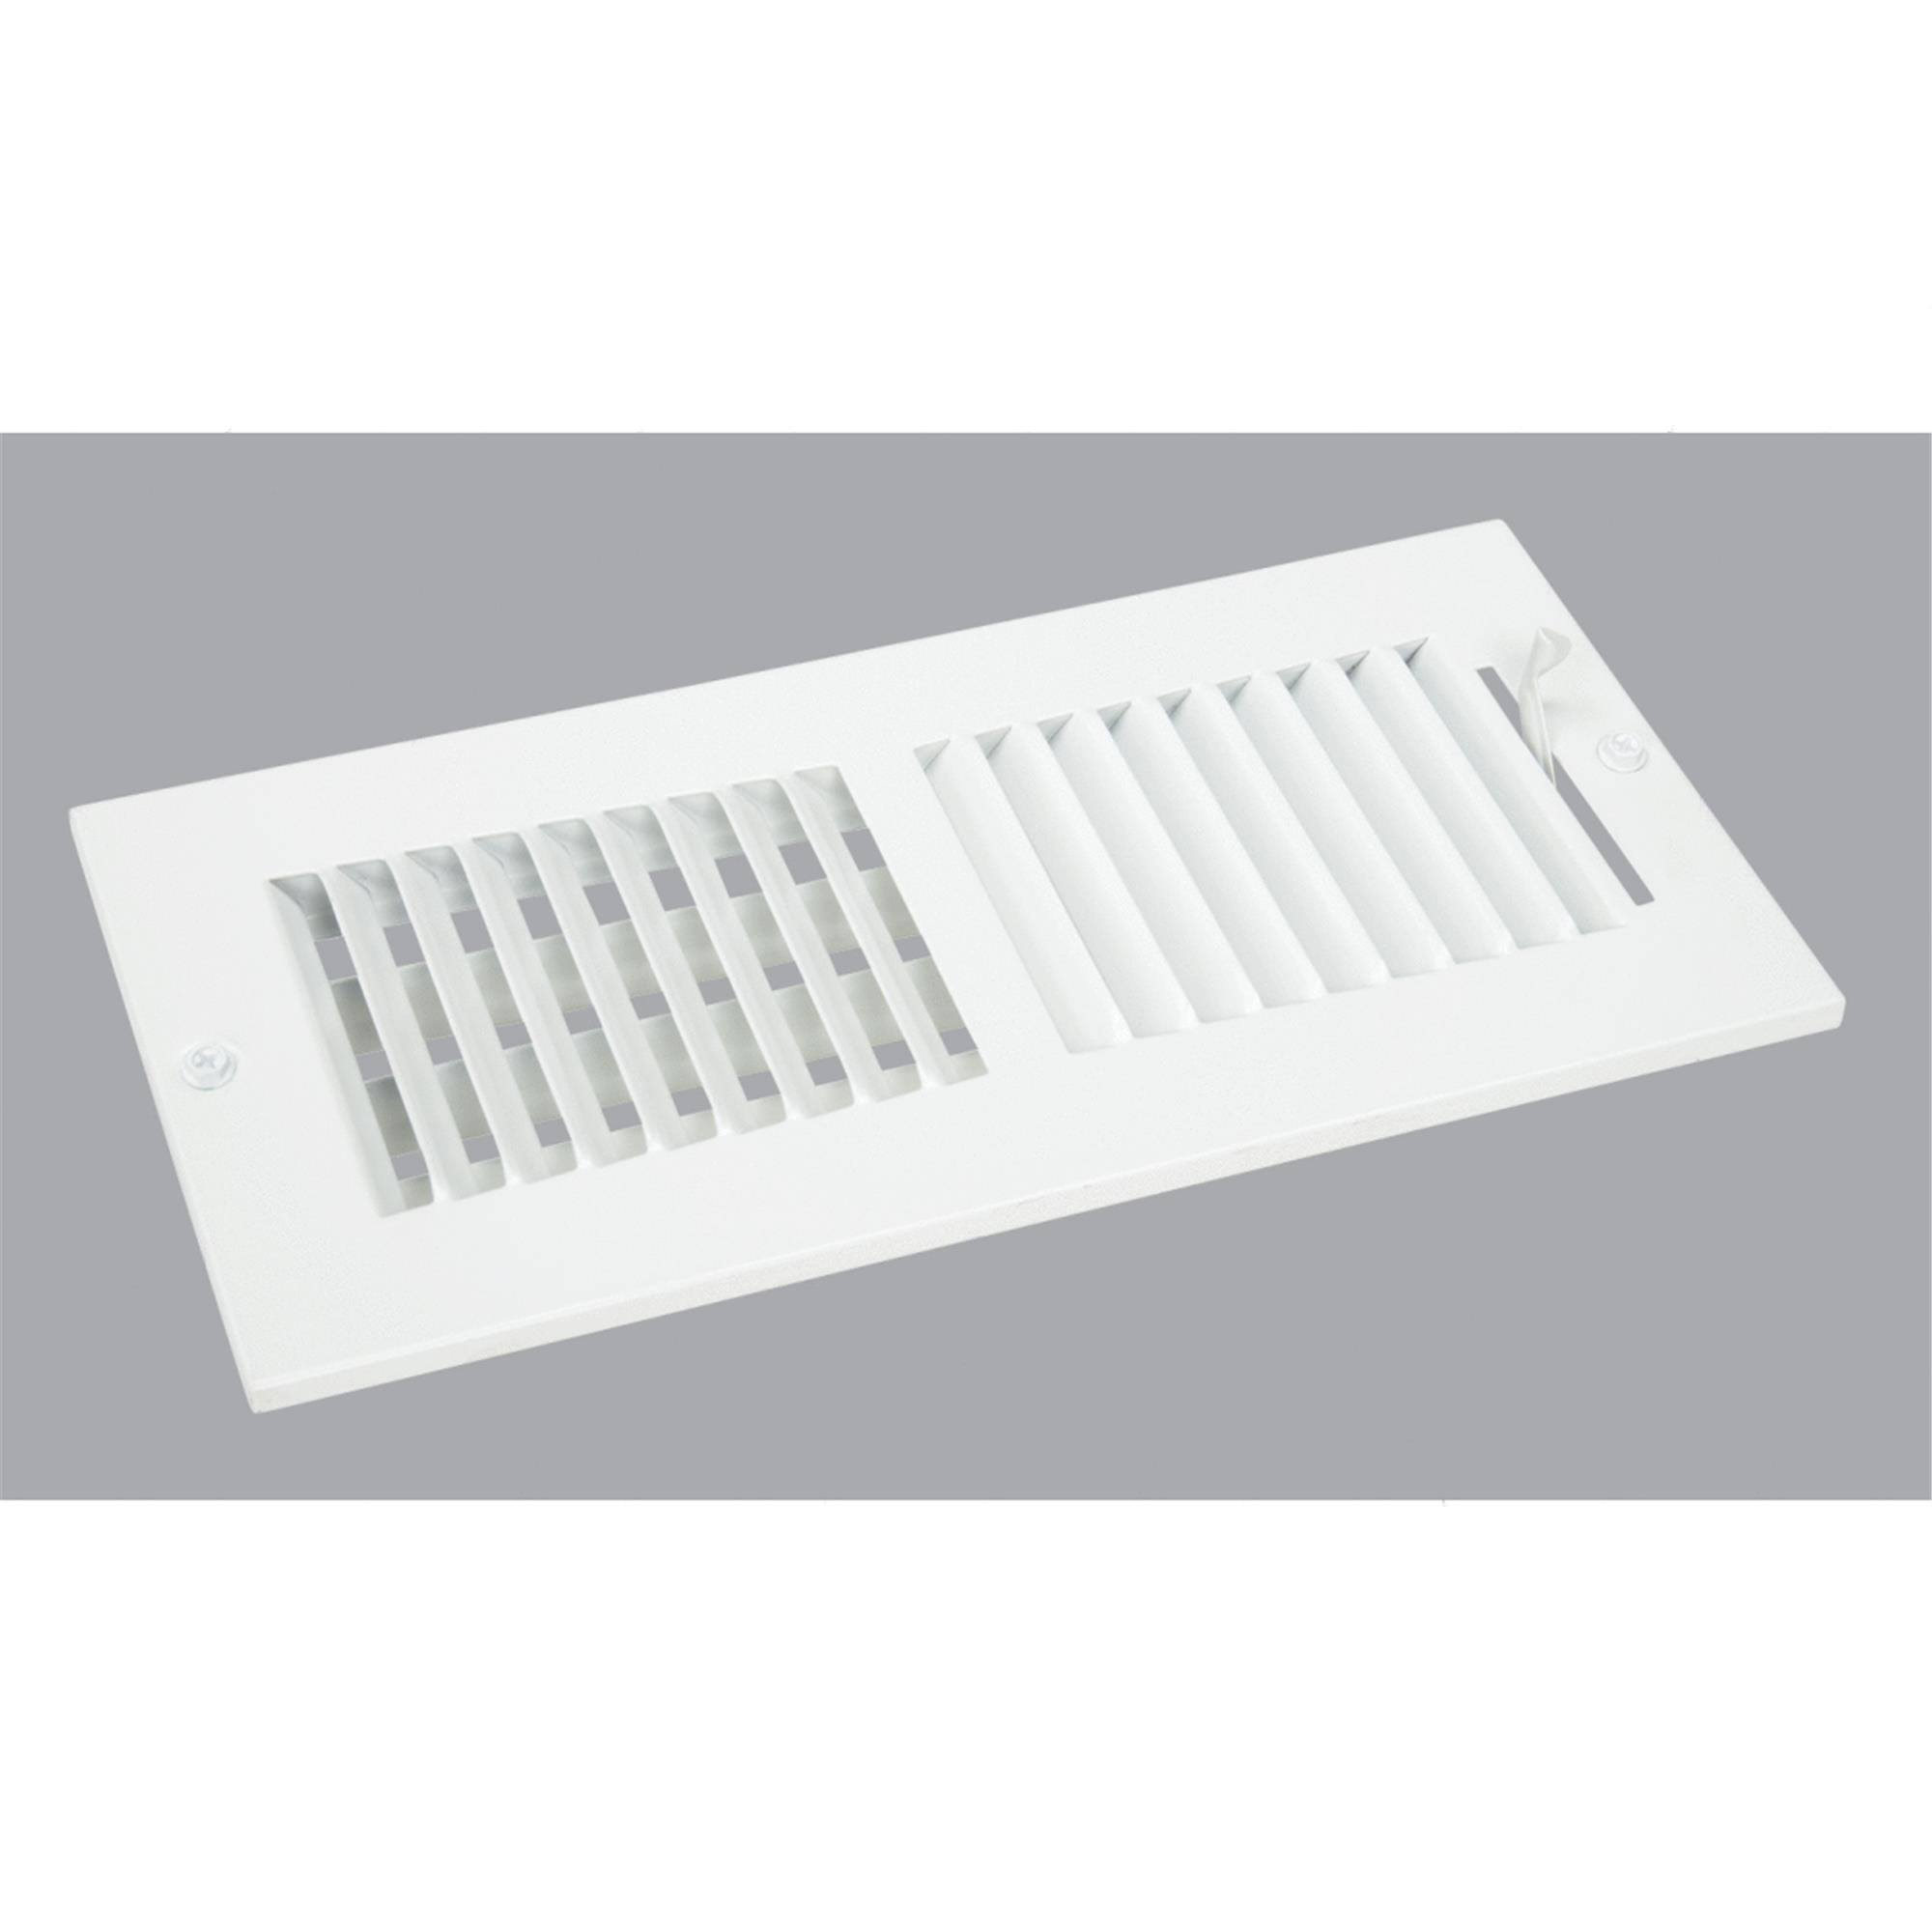 Home Impression 2-Way Wall Register, 2SW1004WH-B